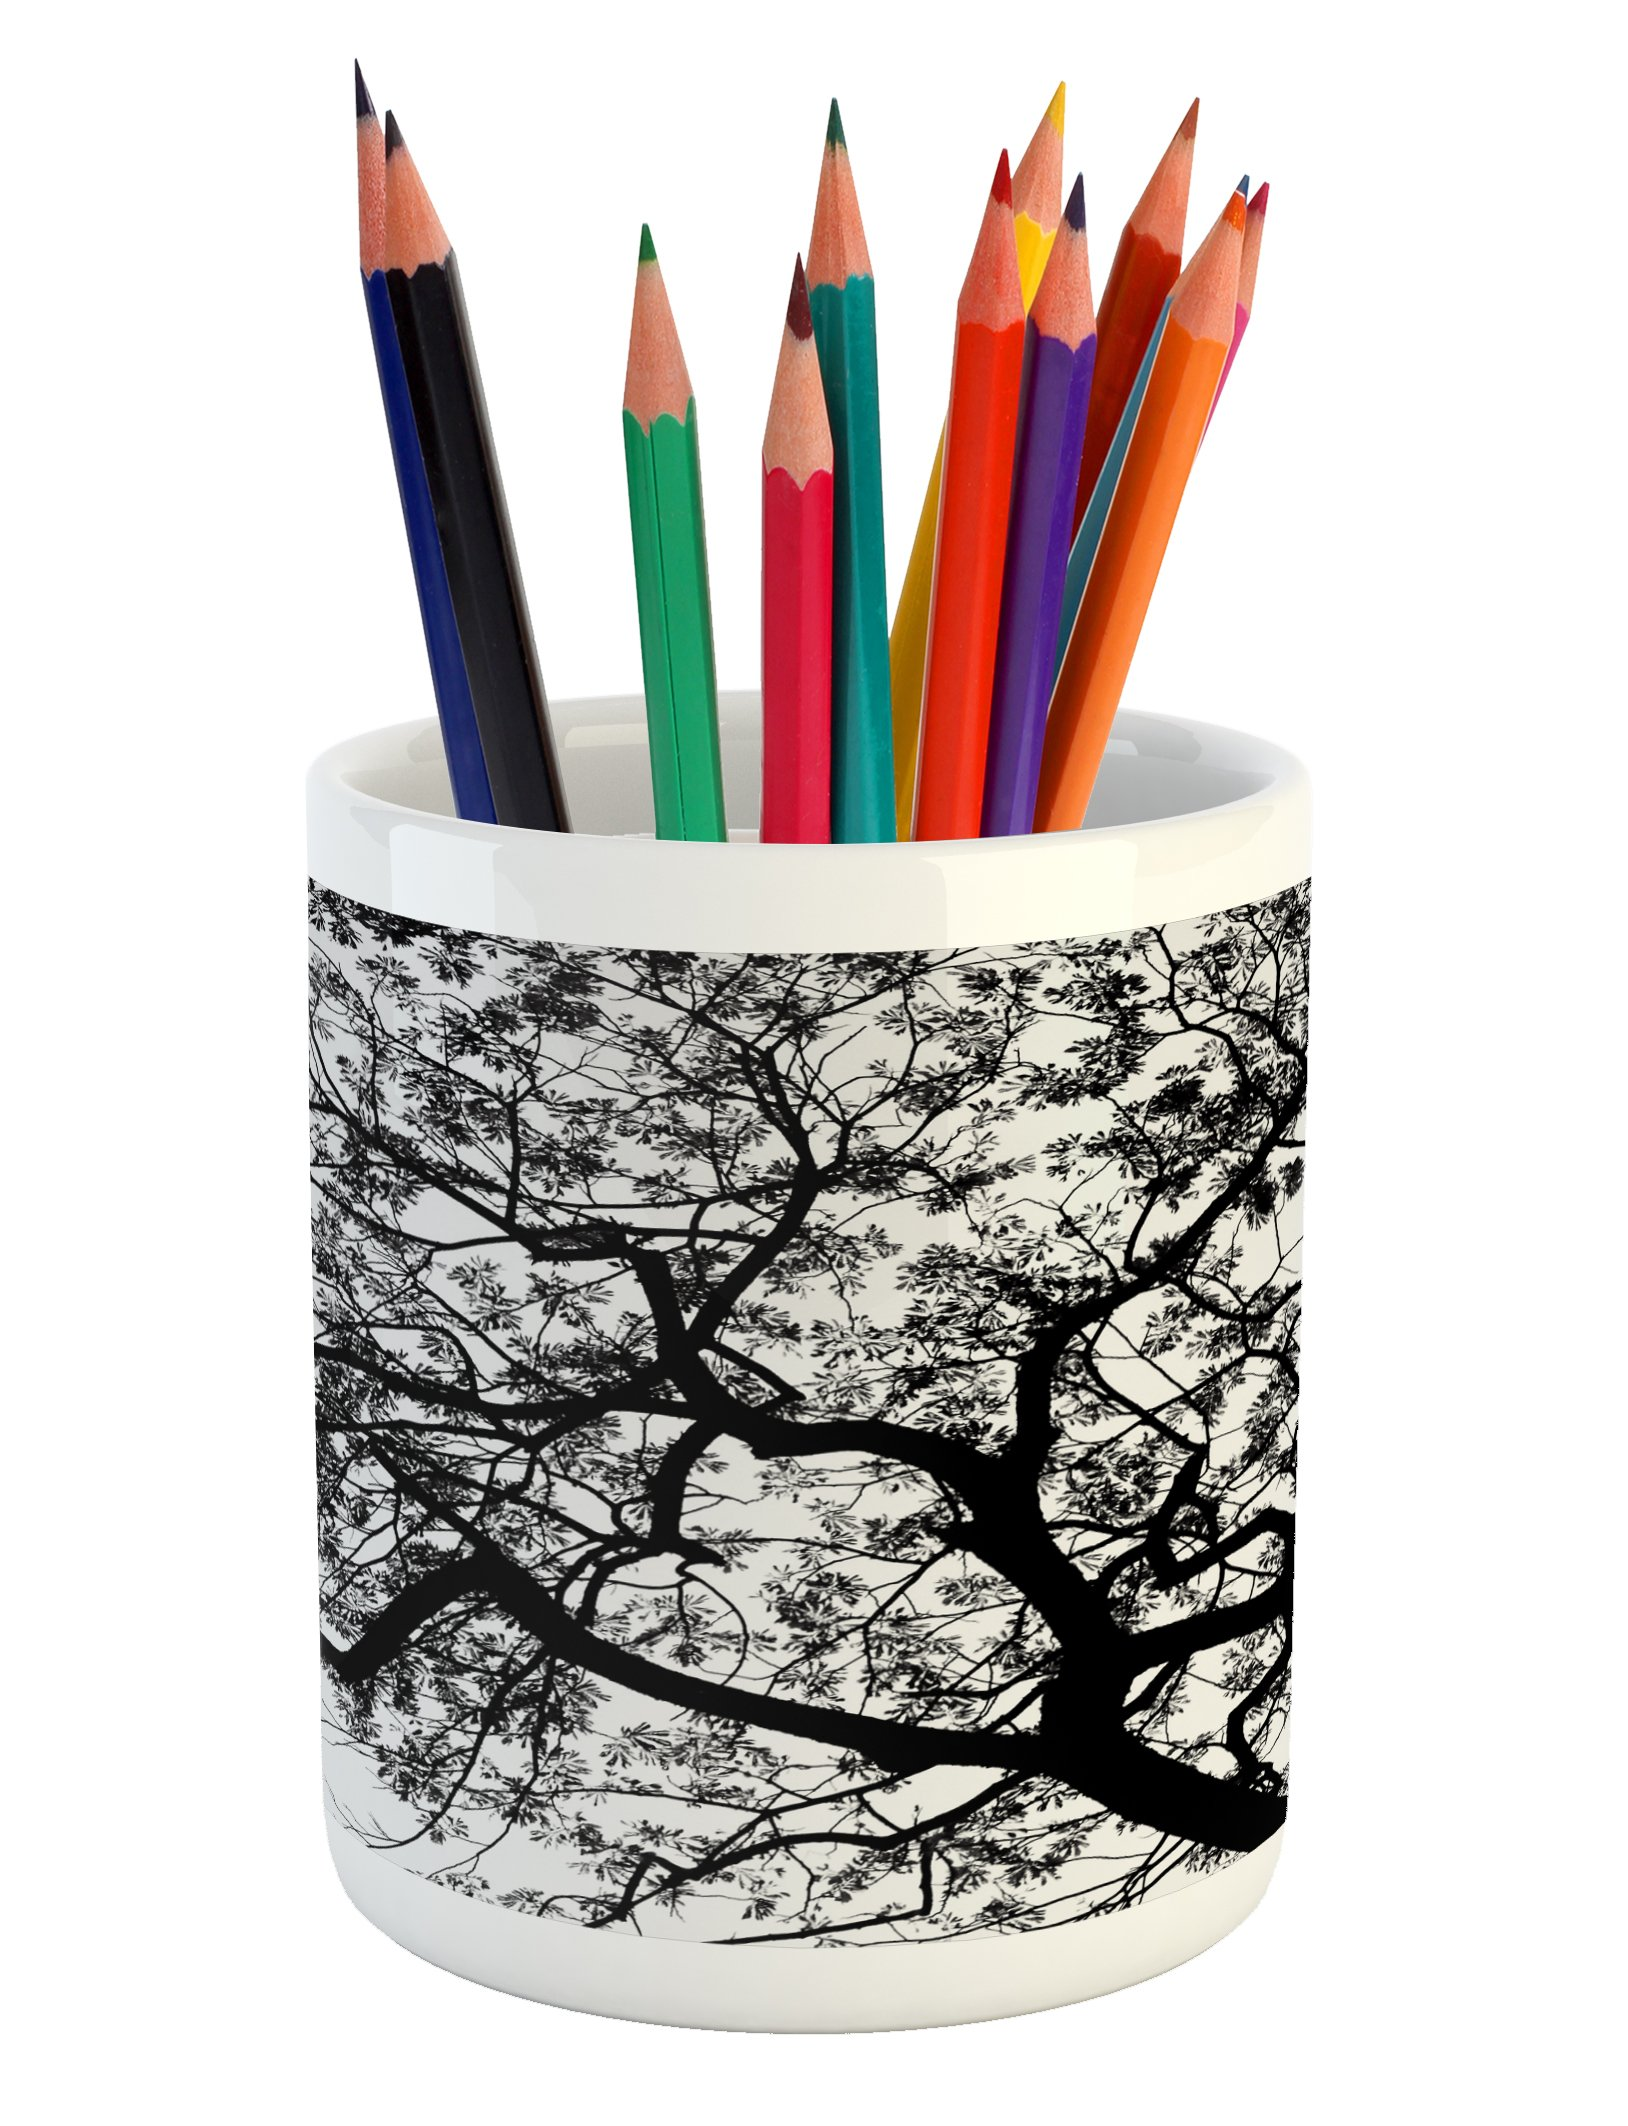 Ambesonne Forest Pencil Pen Holder, Forest Tree Branches Modern Design Spooky Horror Movie Themed Artwork Print, Printed Ceramic Pencil Pen Holder for Desk Office Accessory, Black and White